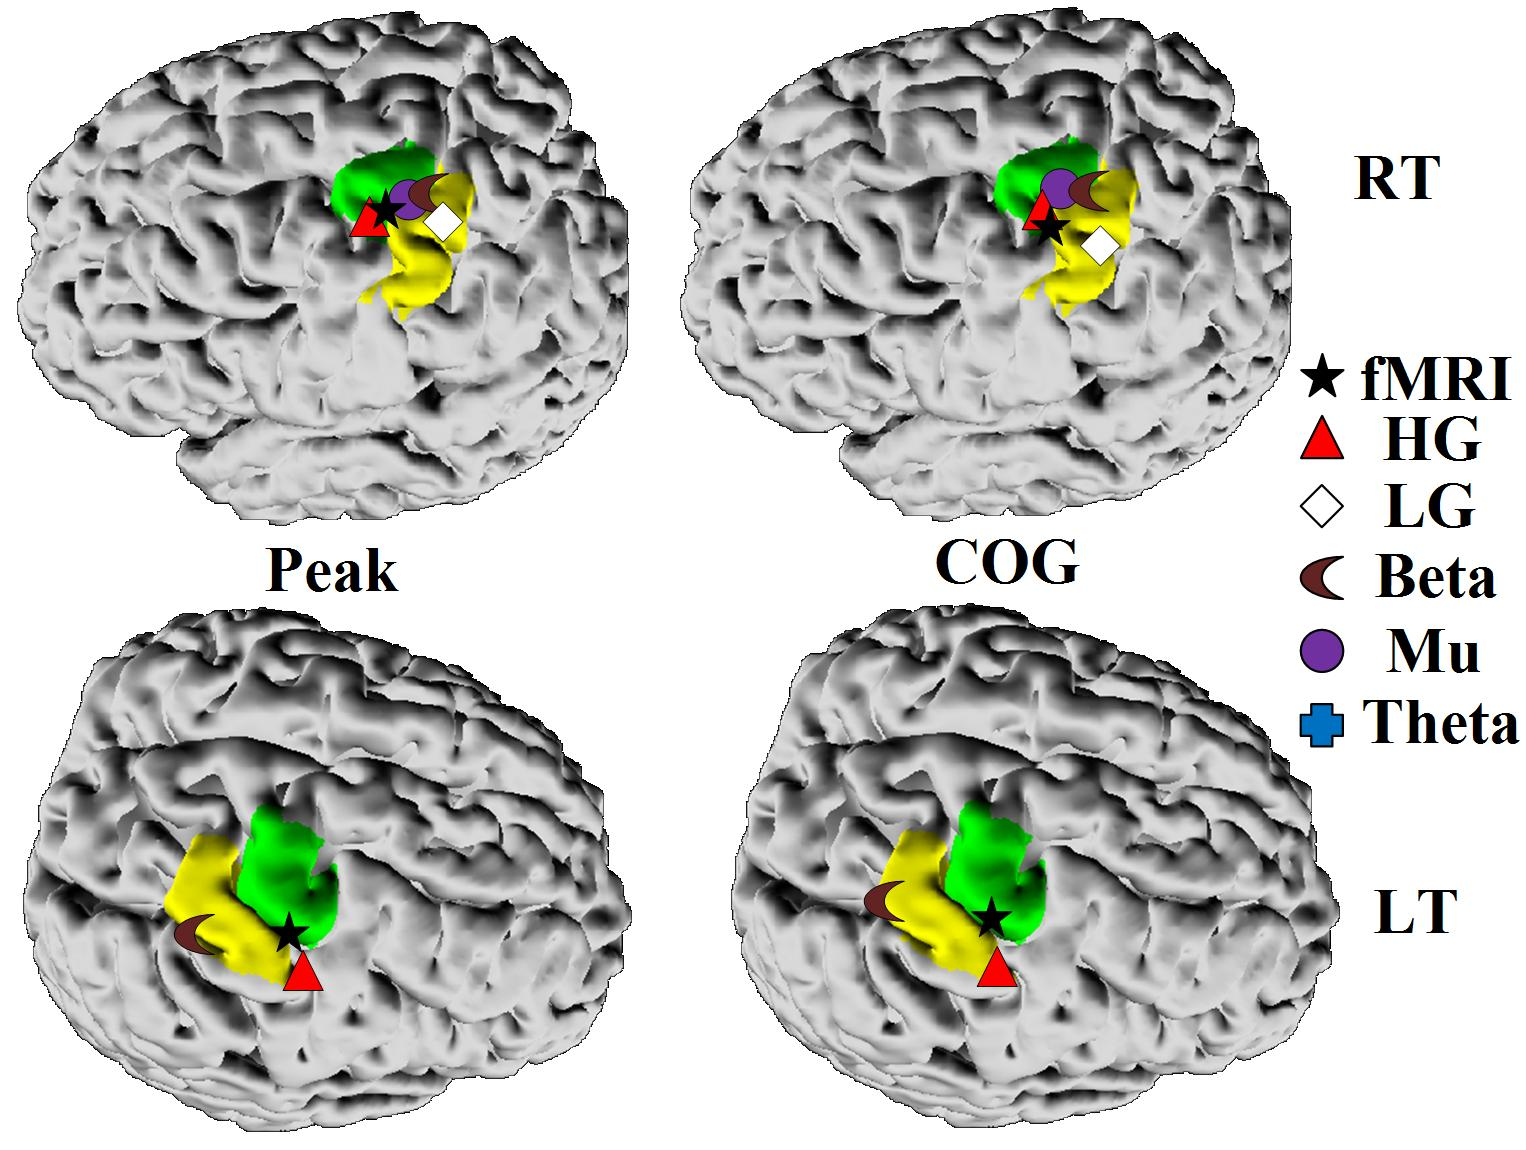 EEG and fMRI locations